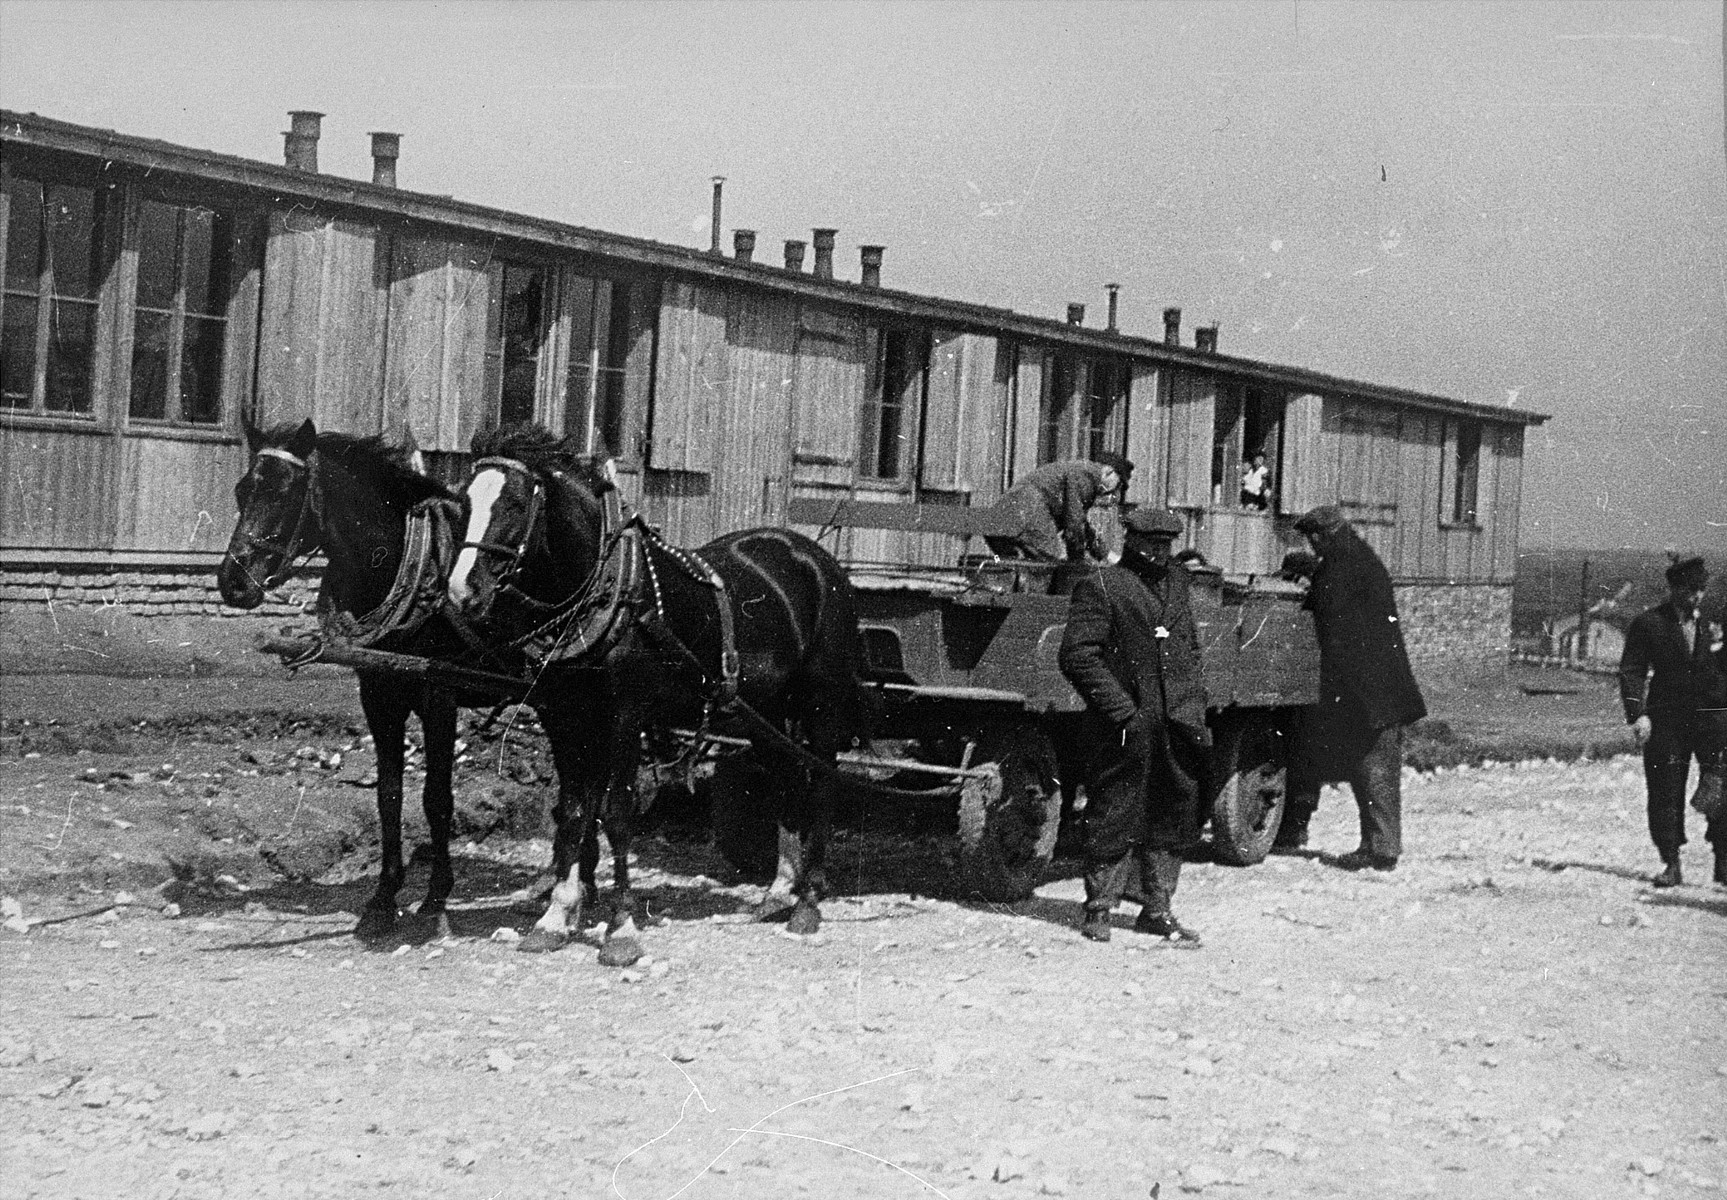 Jewish prisoners in Plaszow unload food containers.